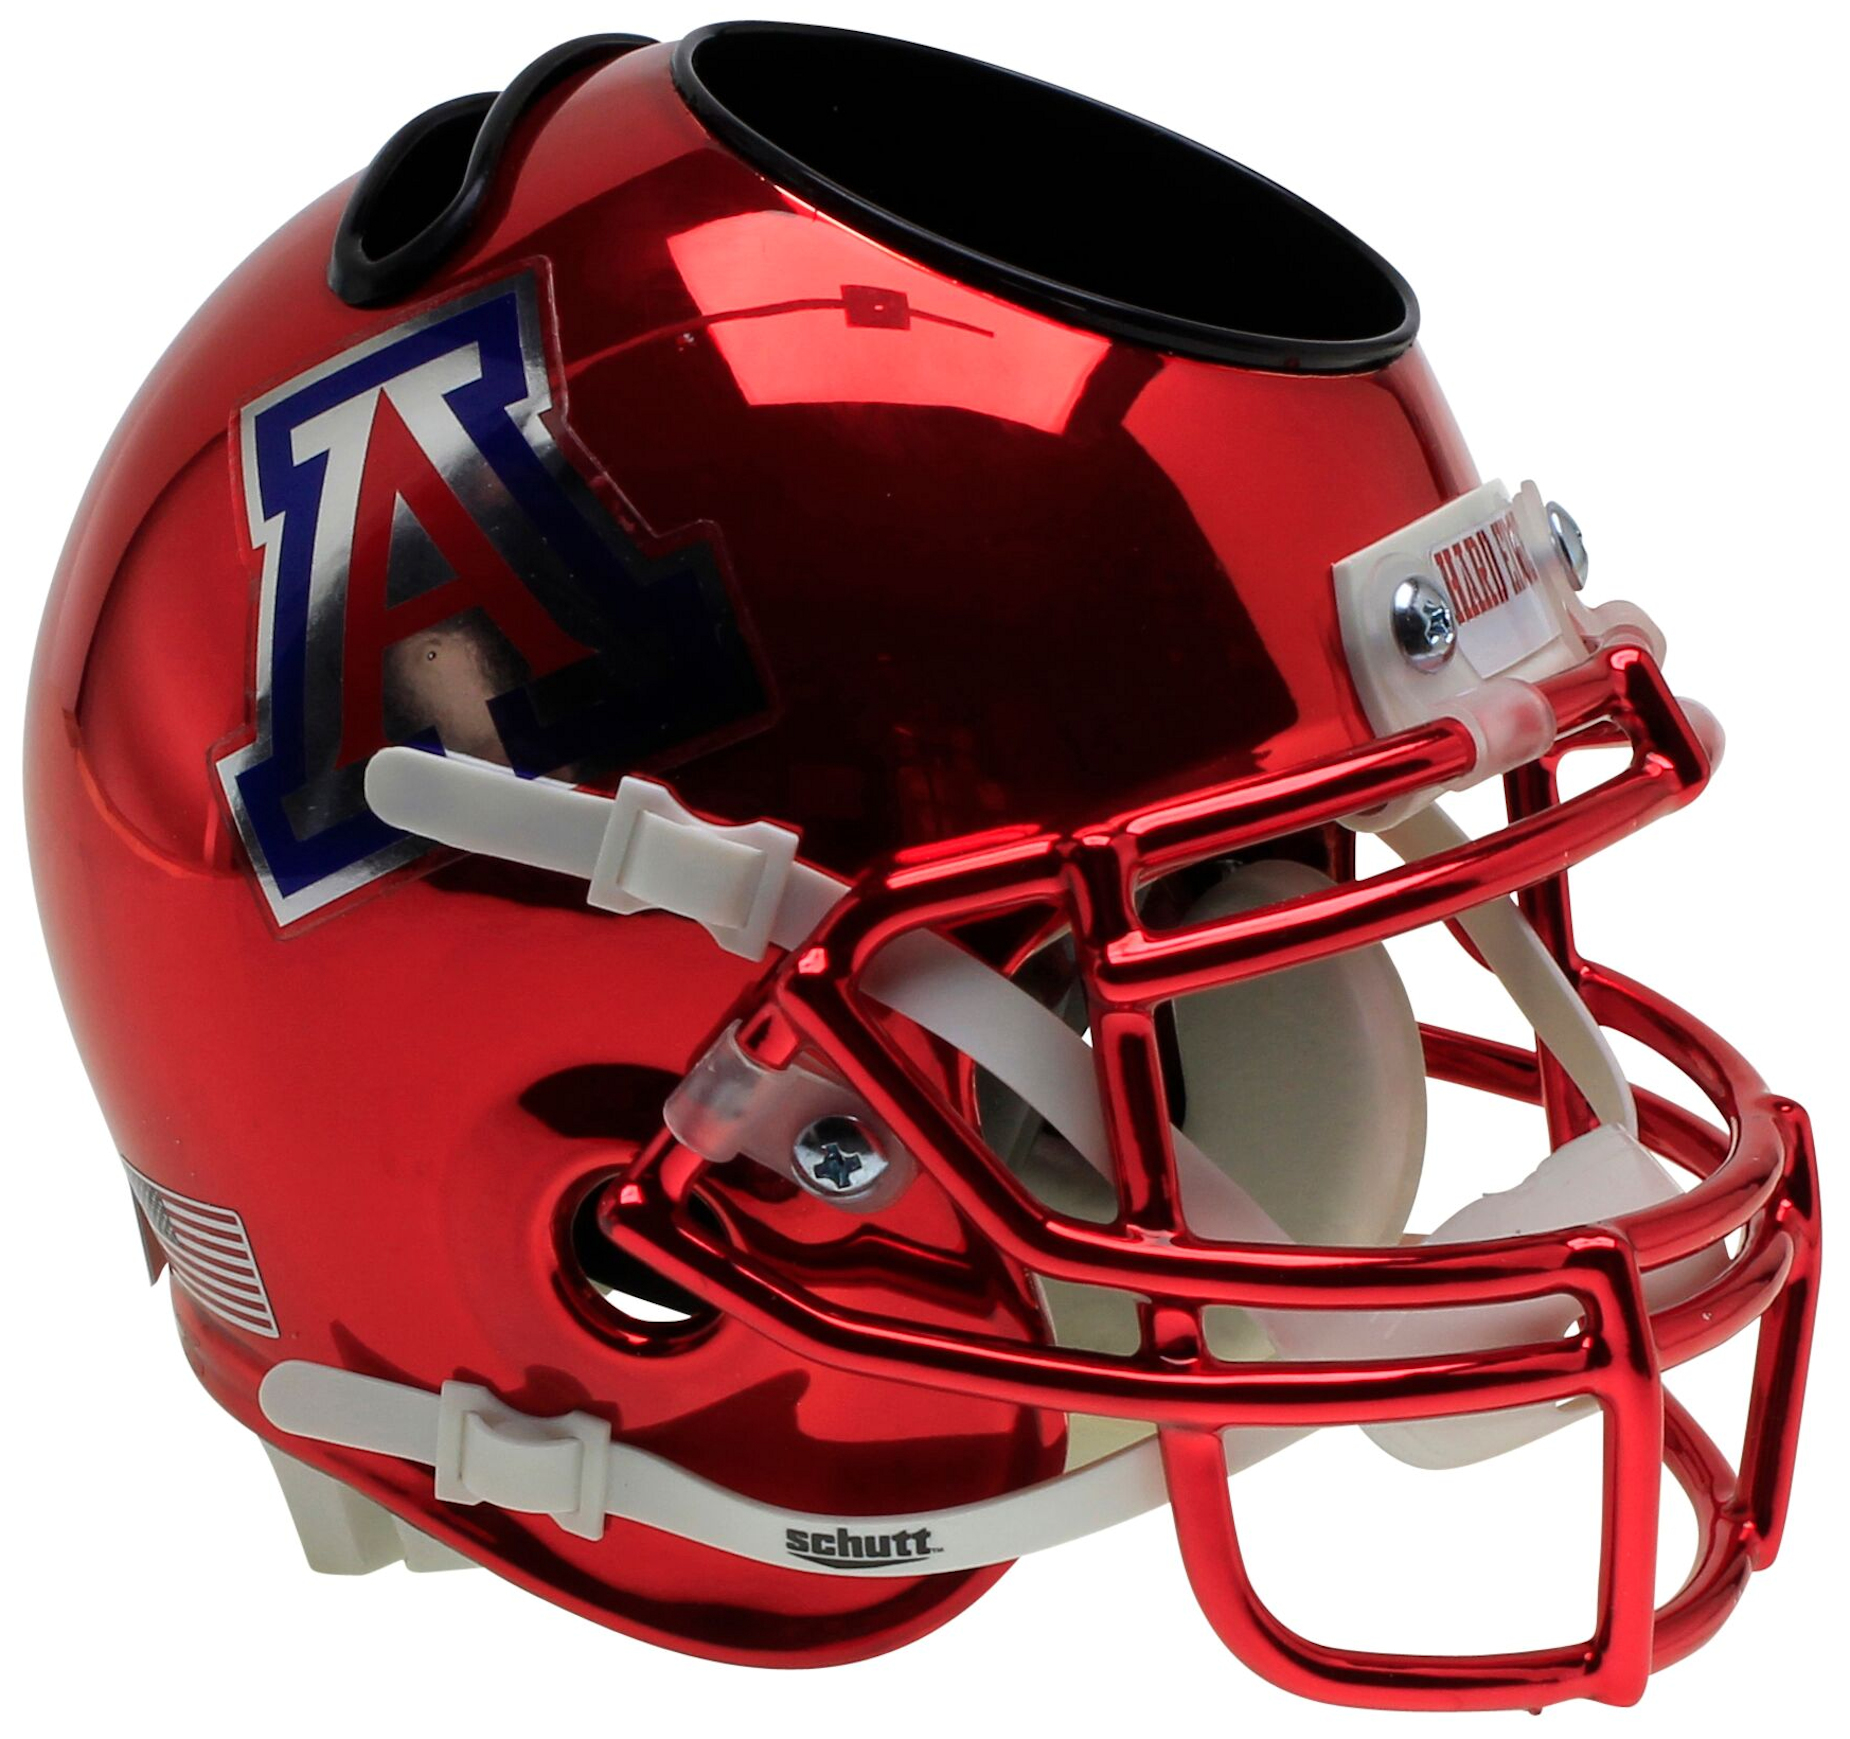 Arizona Wildcats Miniature Football Helmet Desk Caddy <B>Chrome</B>